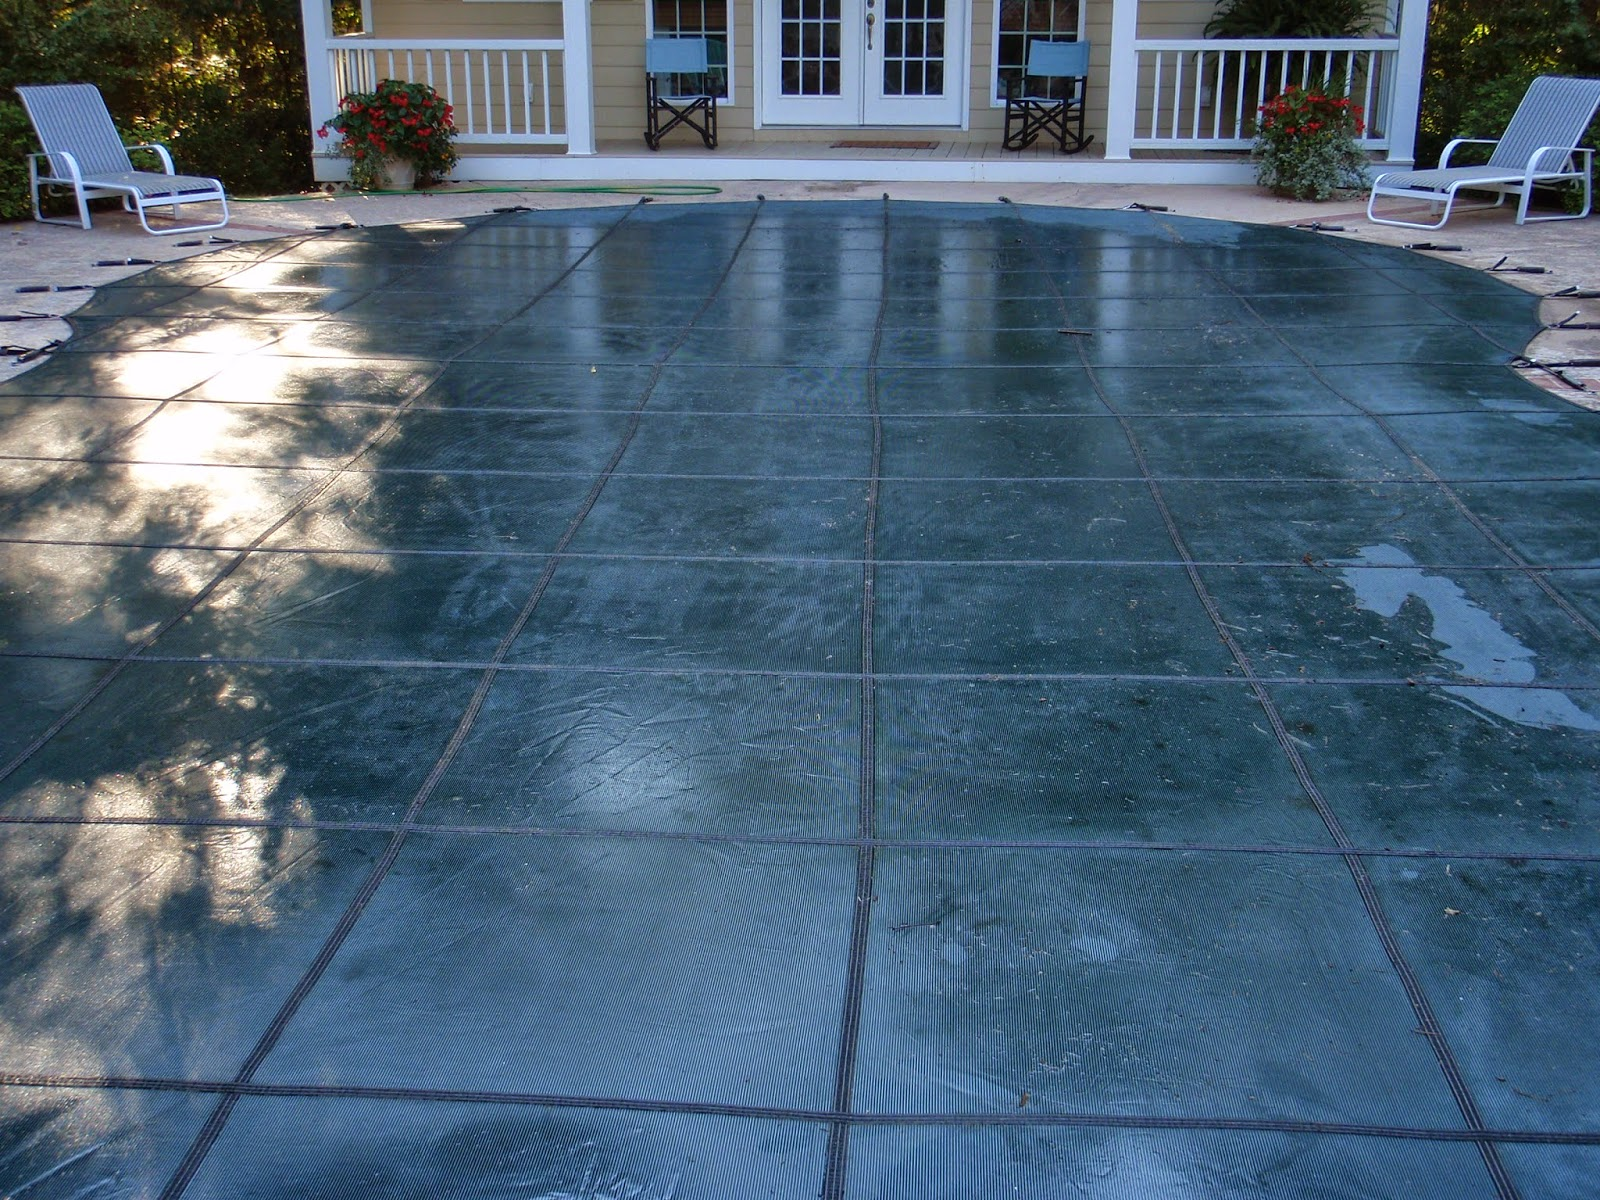 Mesh Vs Solid Safety Covers America S Swimming Pool